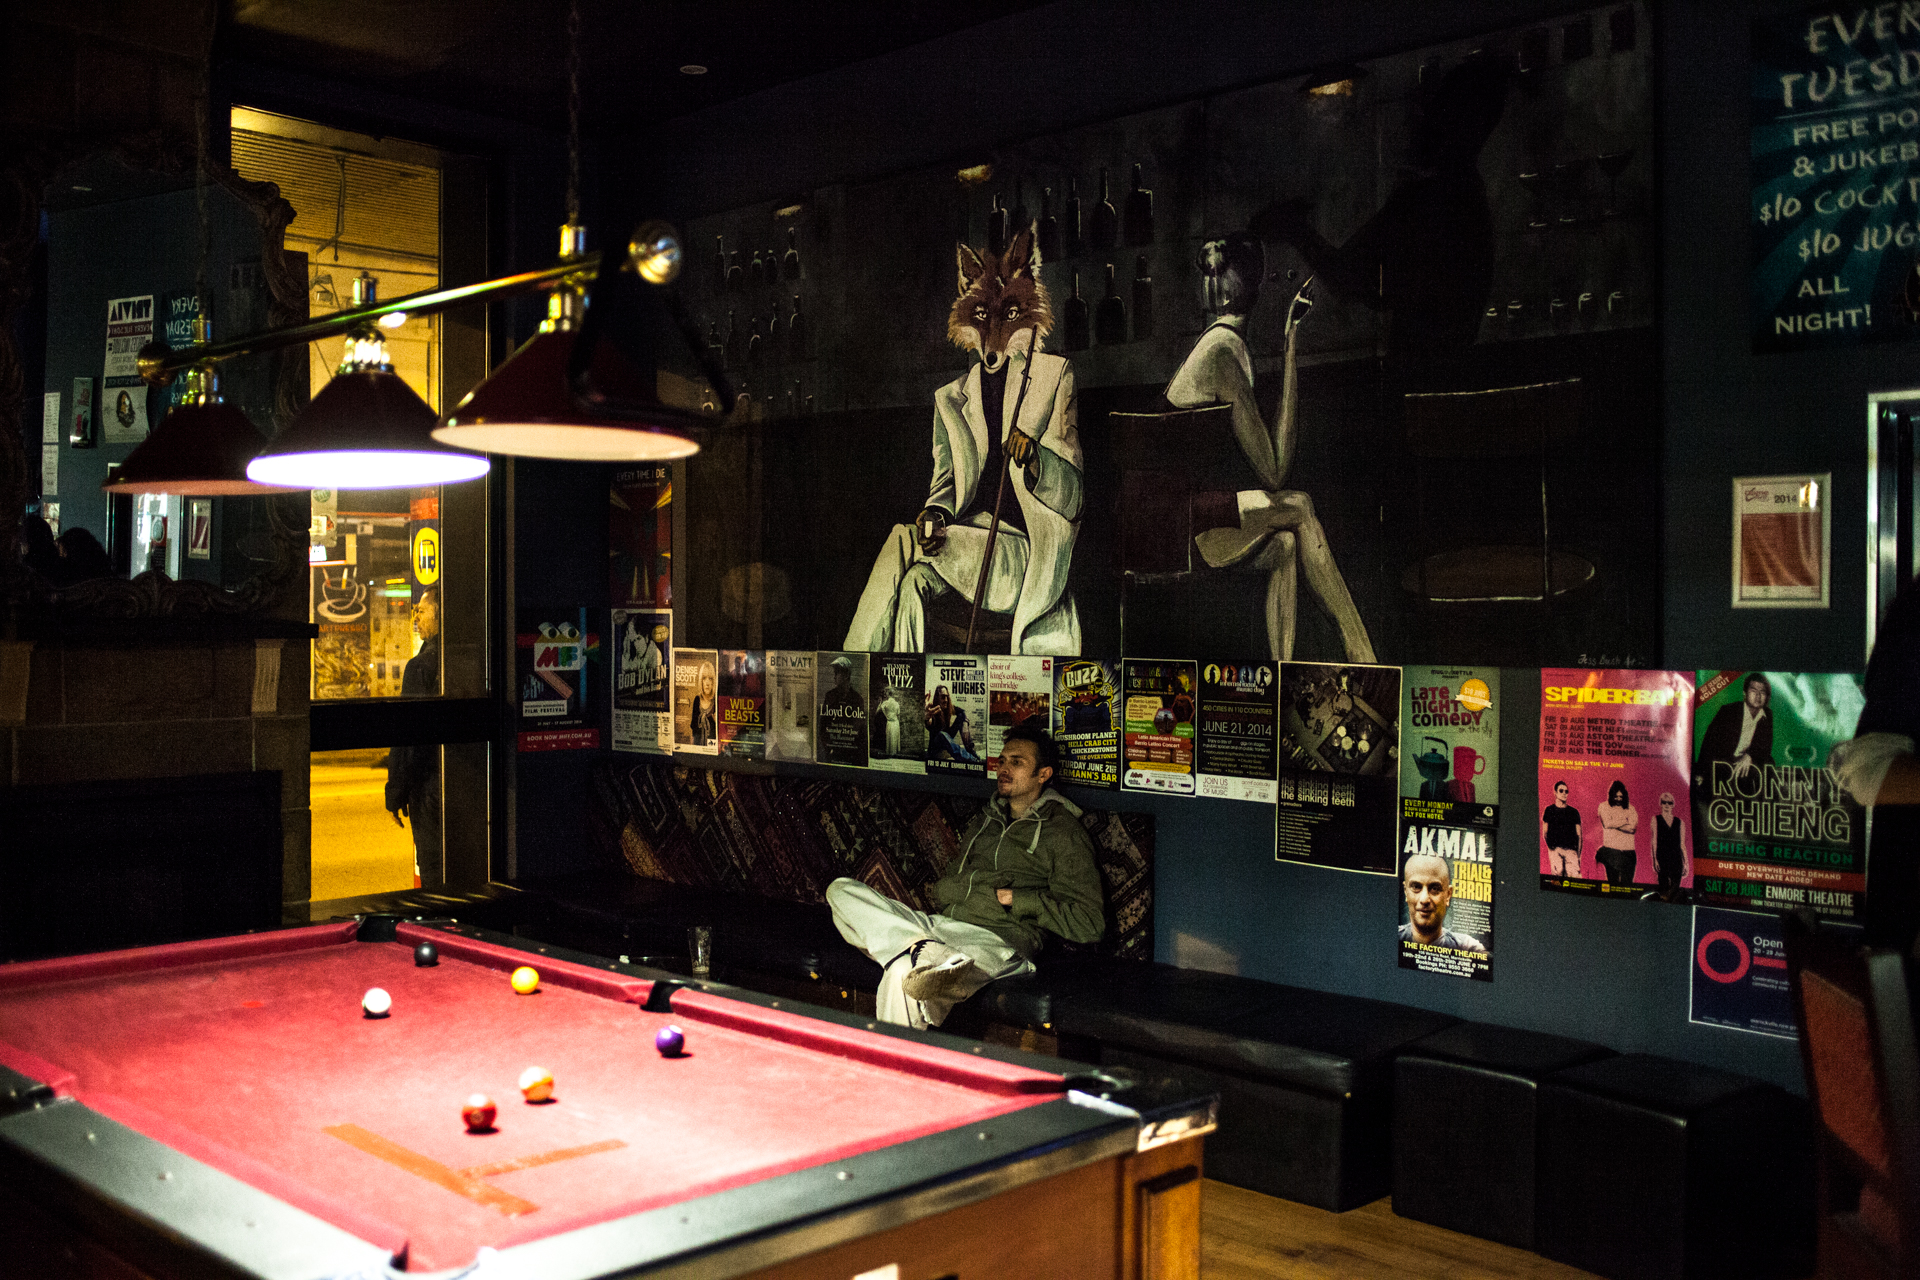 Metal music and billiards